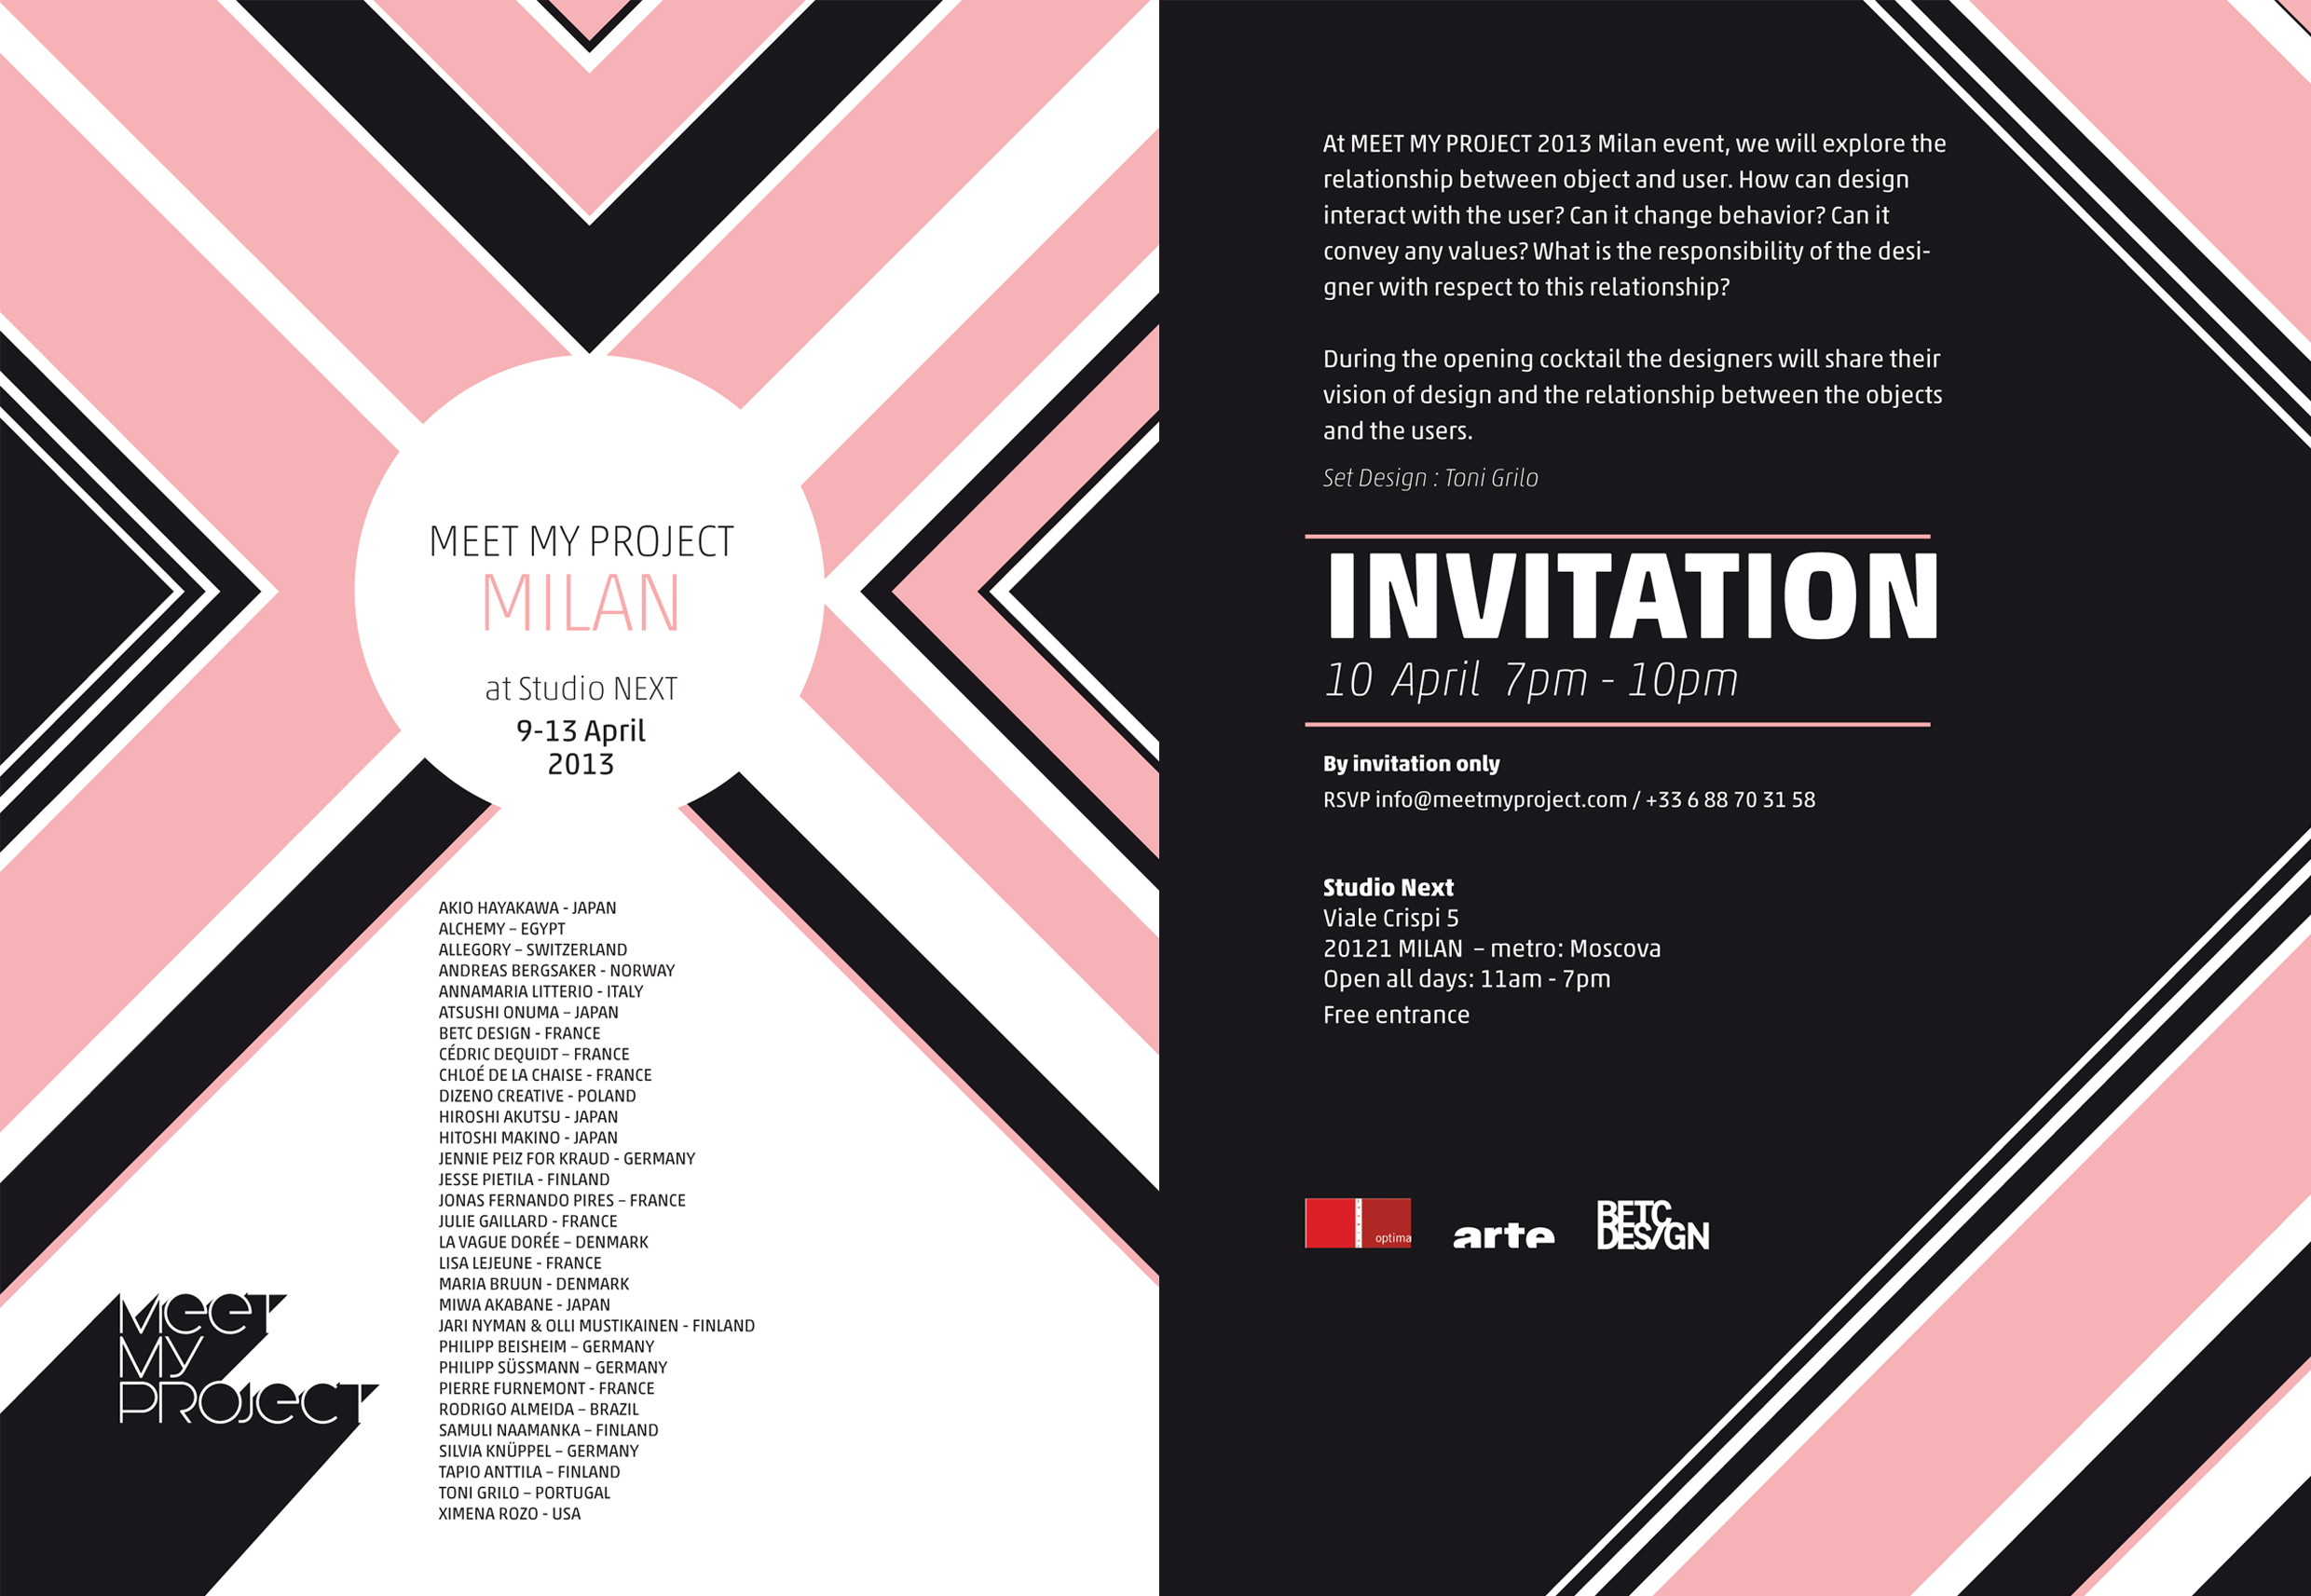 MEET+MY+PROJECT in Milan